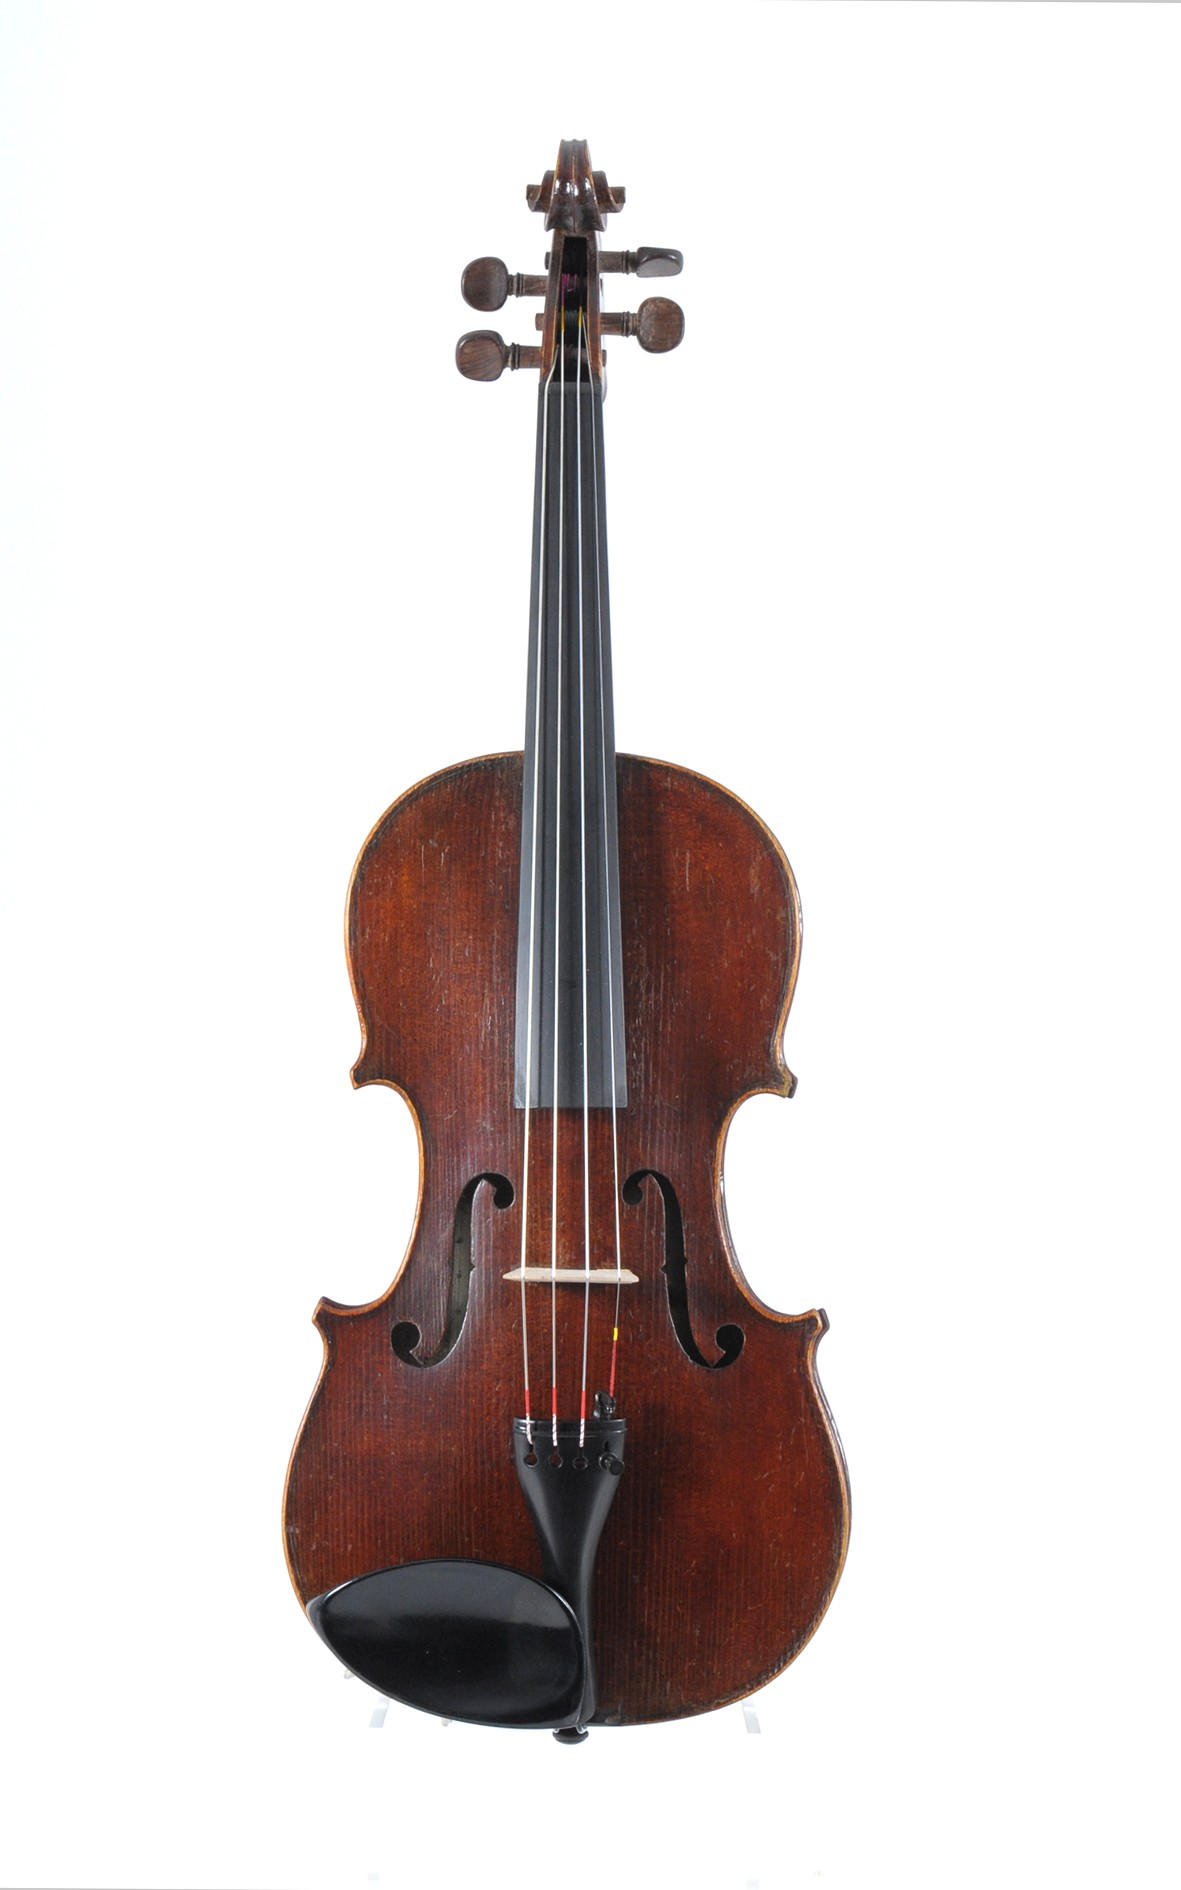 antique 3/4 violin by Auguste Hury